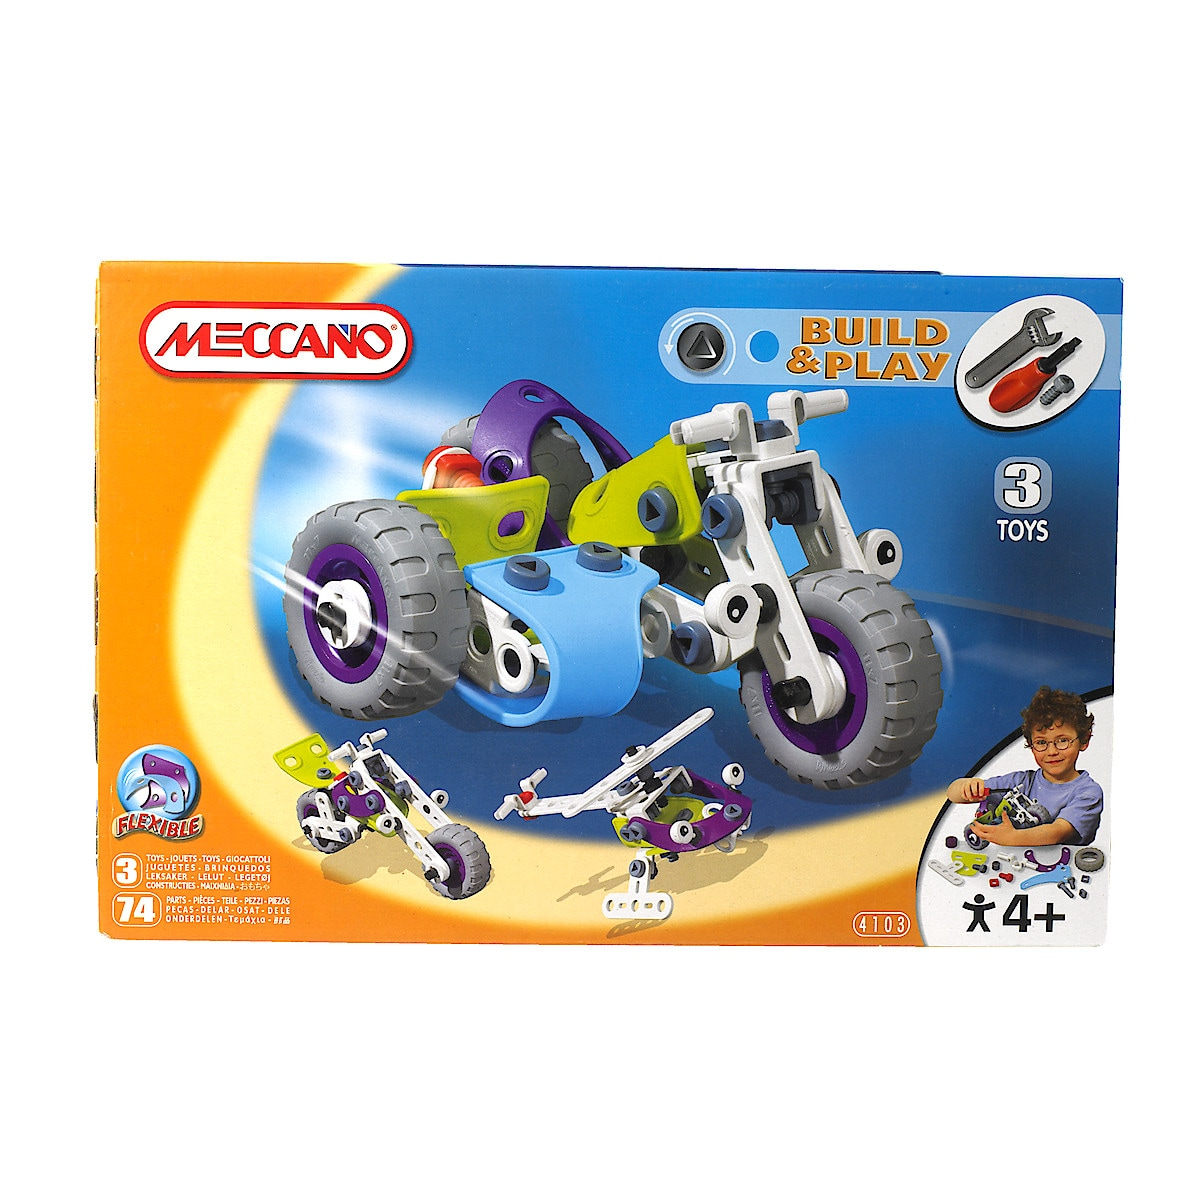 Build & Play Meccano